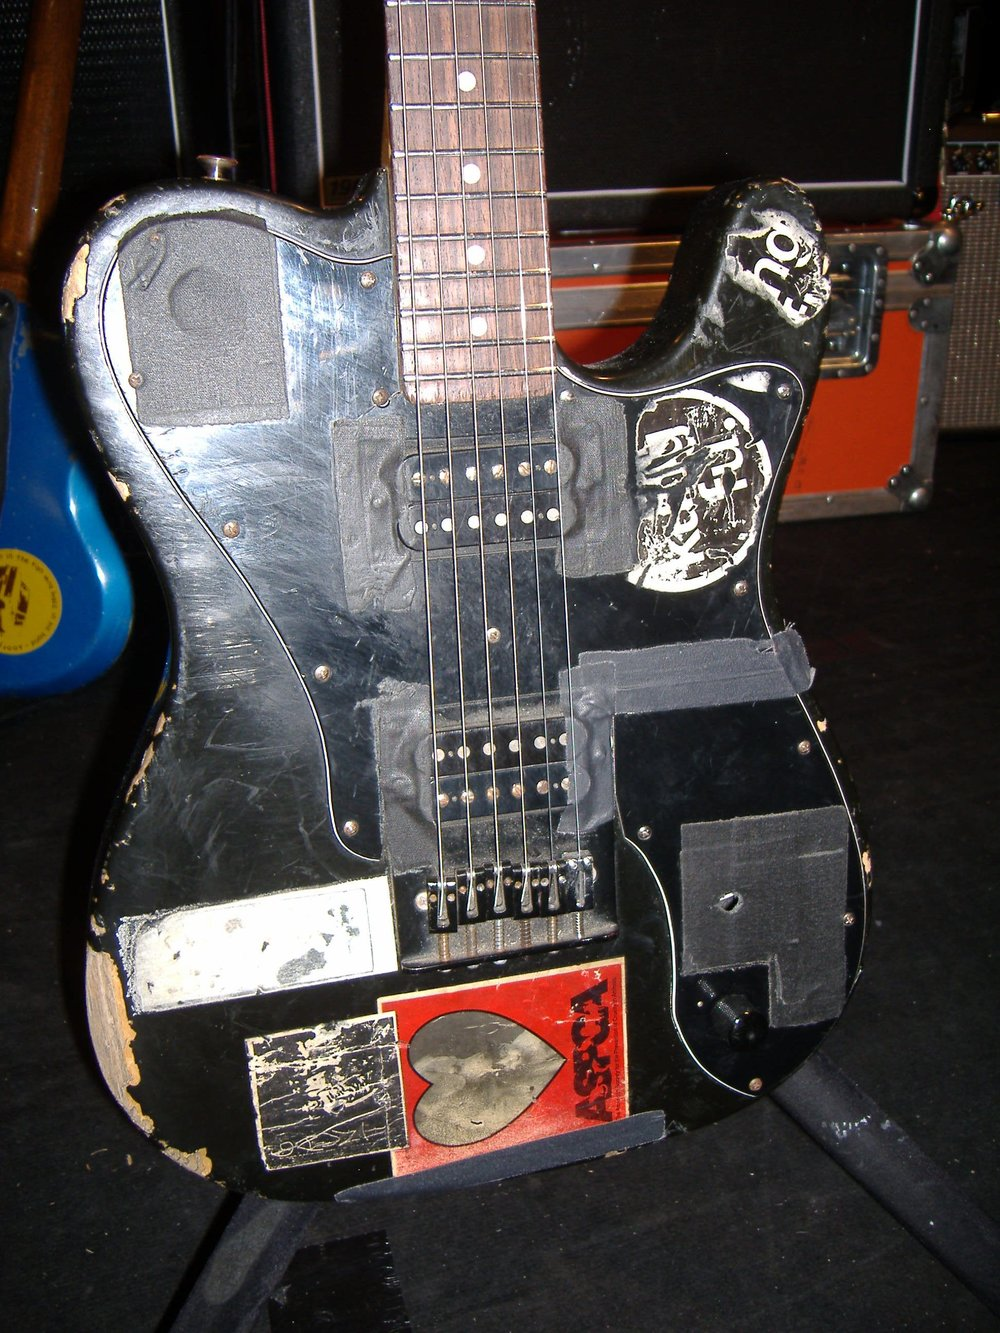 Another heavily modified Fender from Sonic Youth.